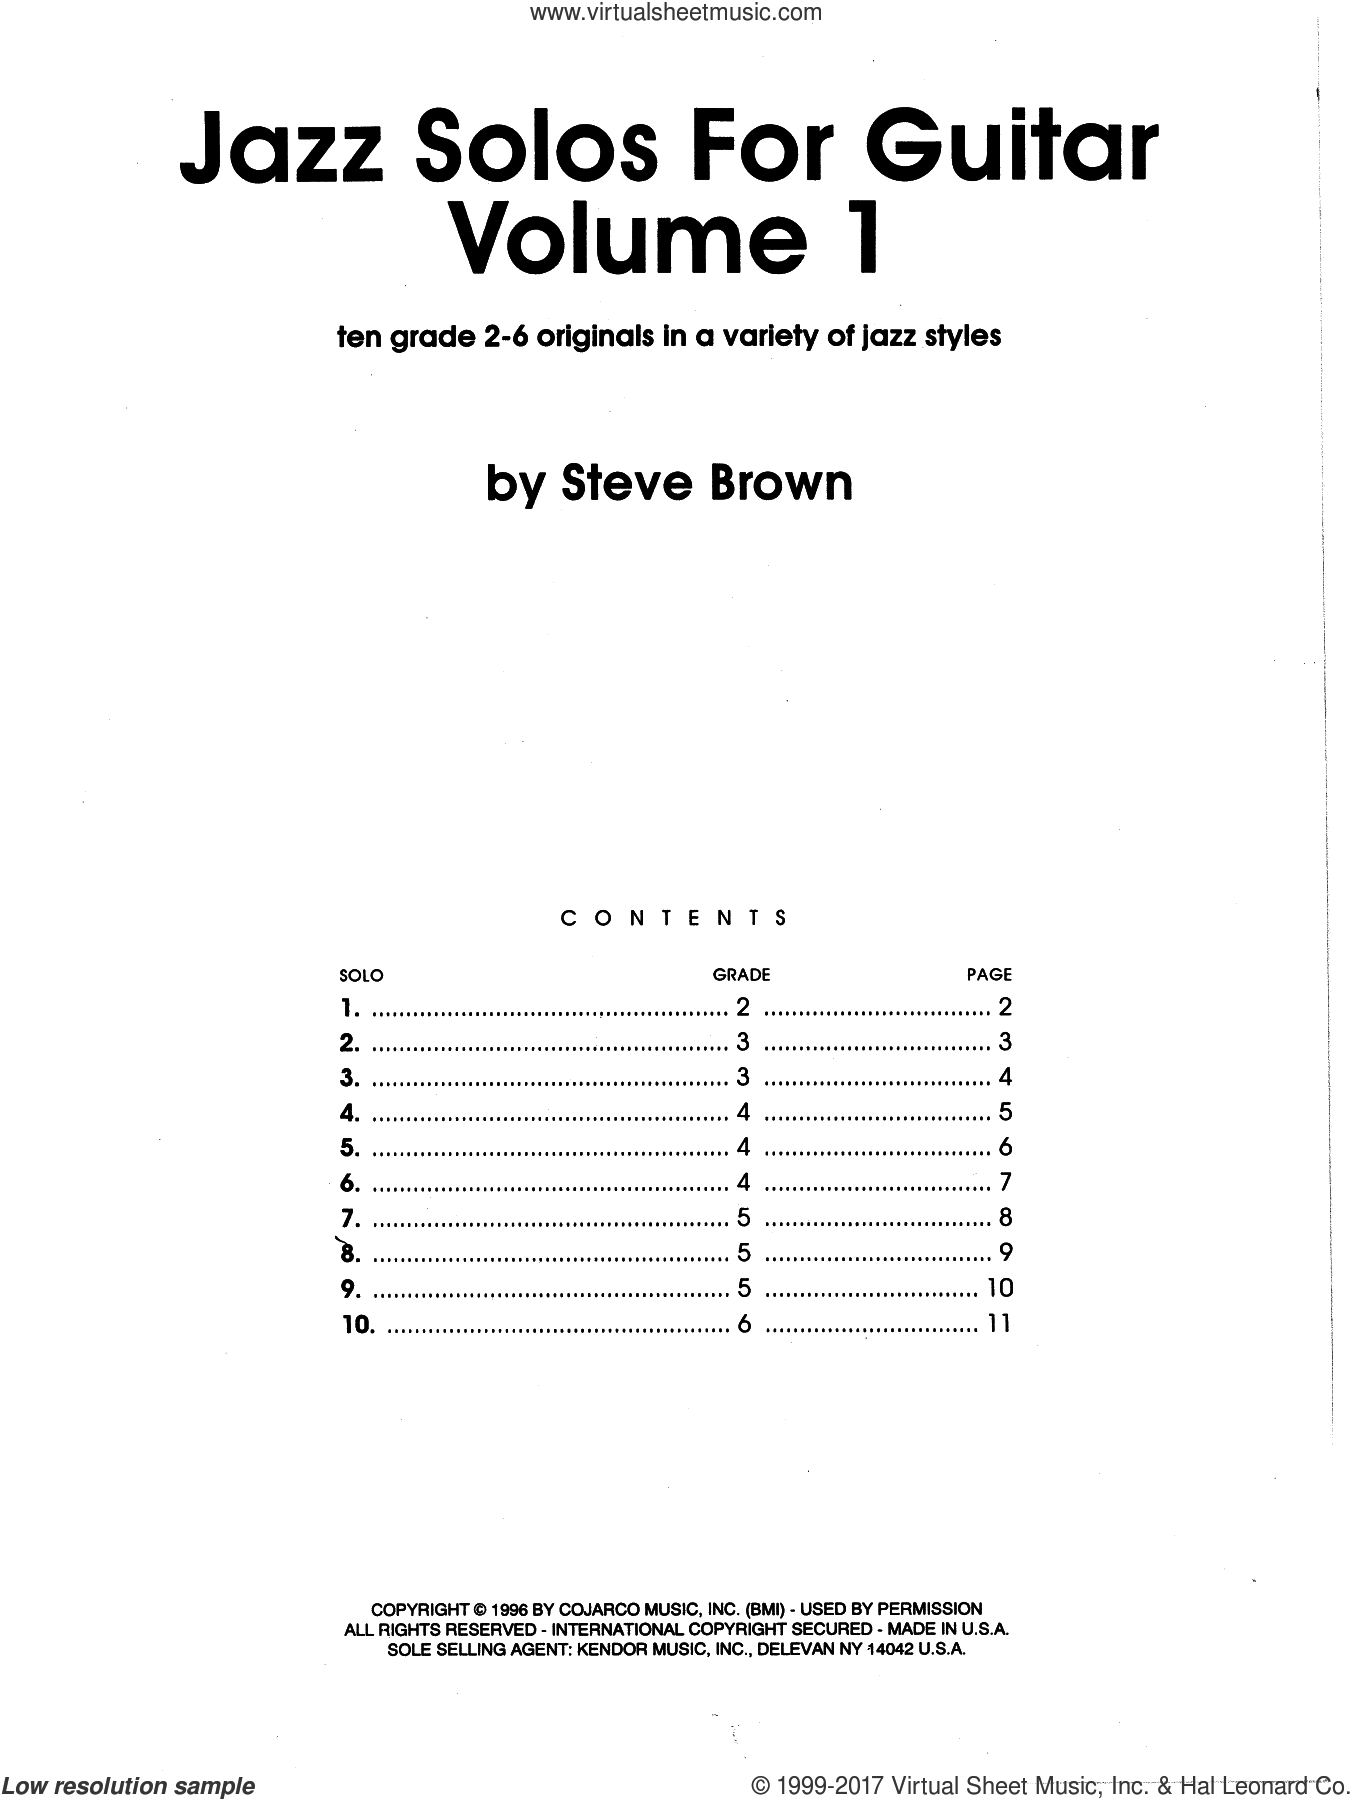 Jazz Solos For Guitar, Volume 1 sheet music for guitar solo by Steve Brown, intermediate skill level